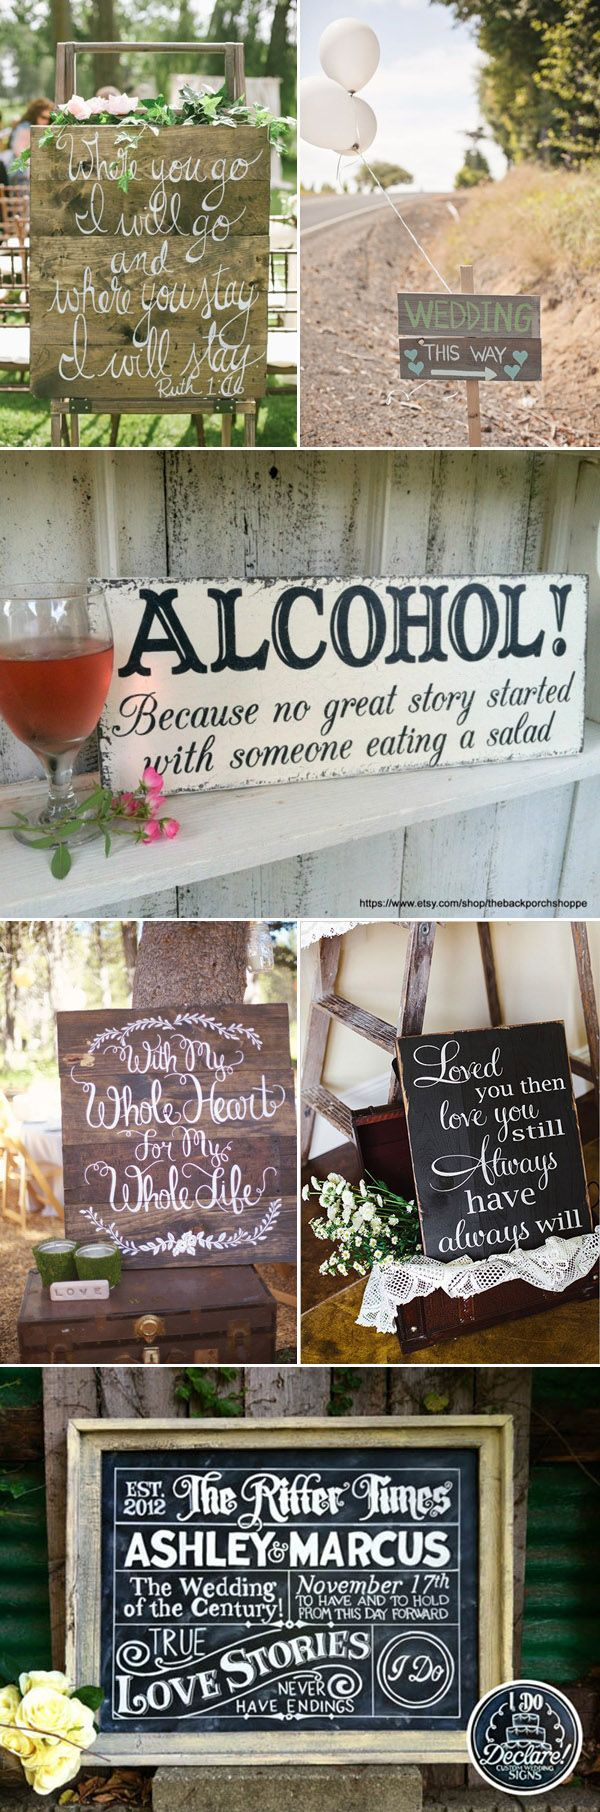 creative wedding sign ideas for country rustic weddings